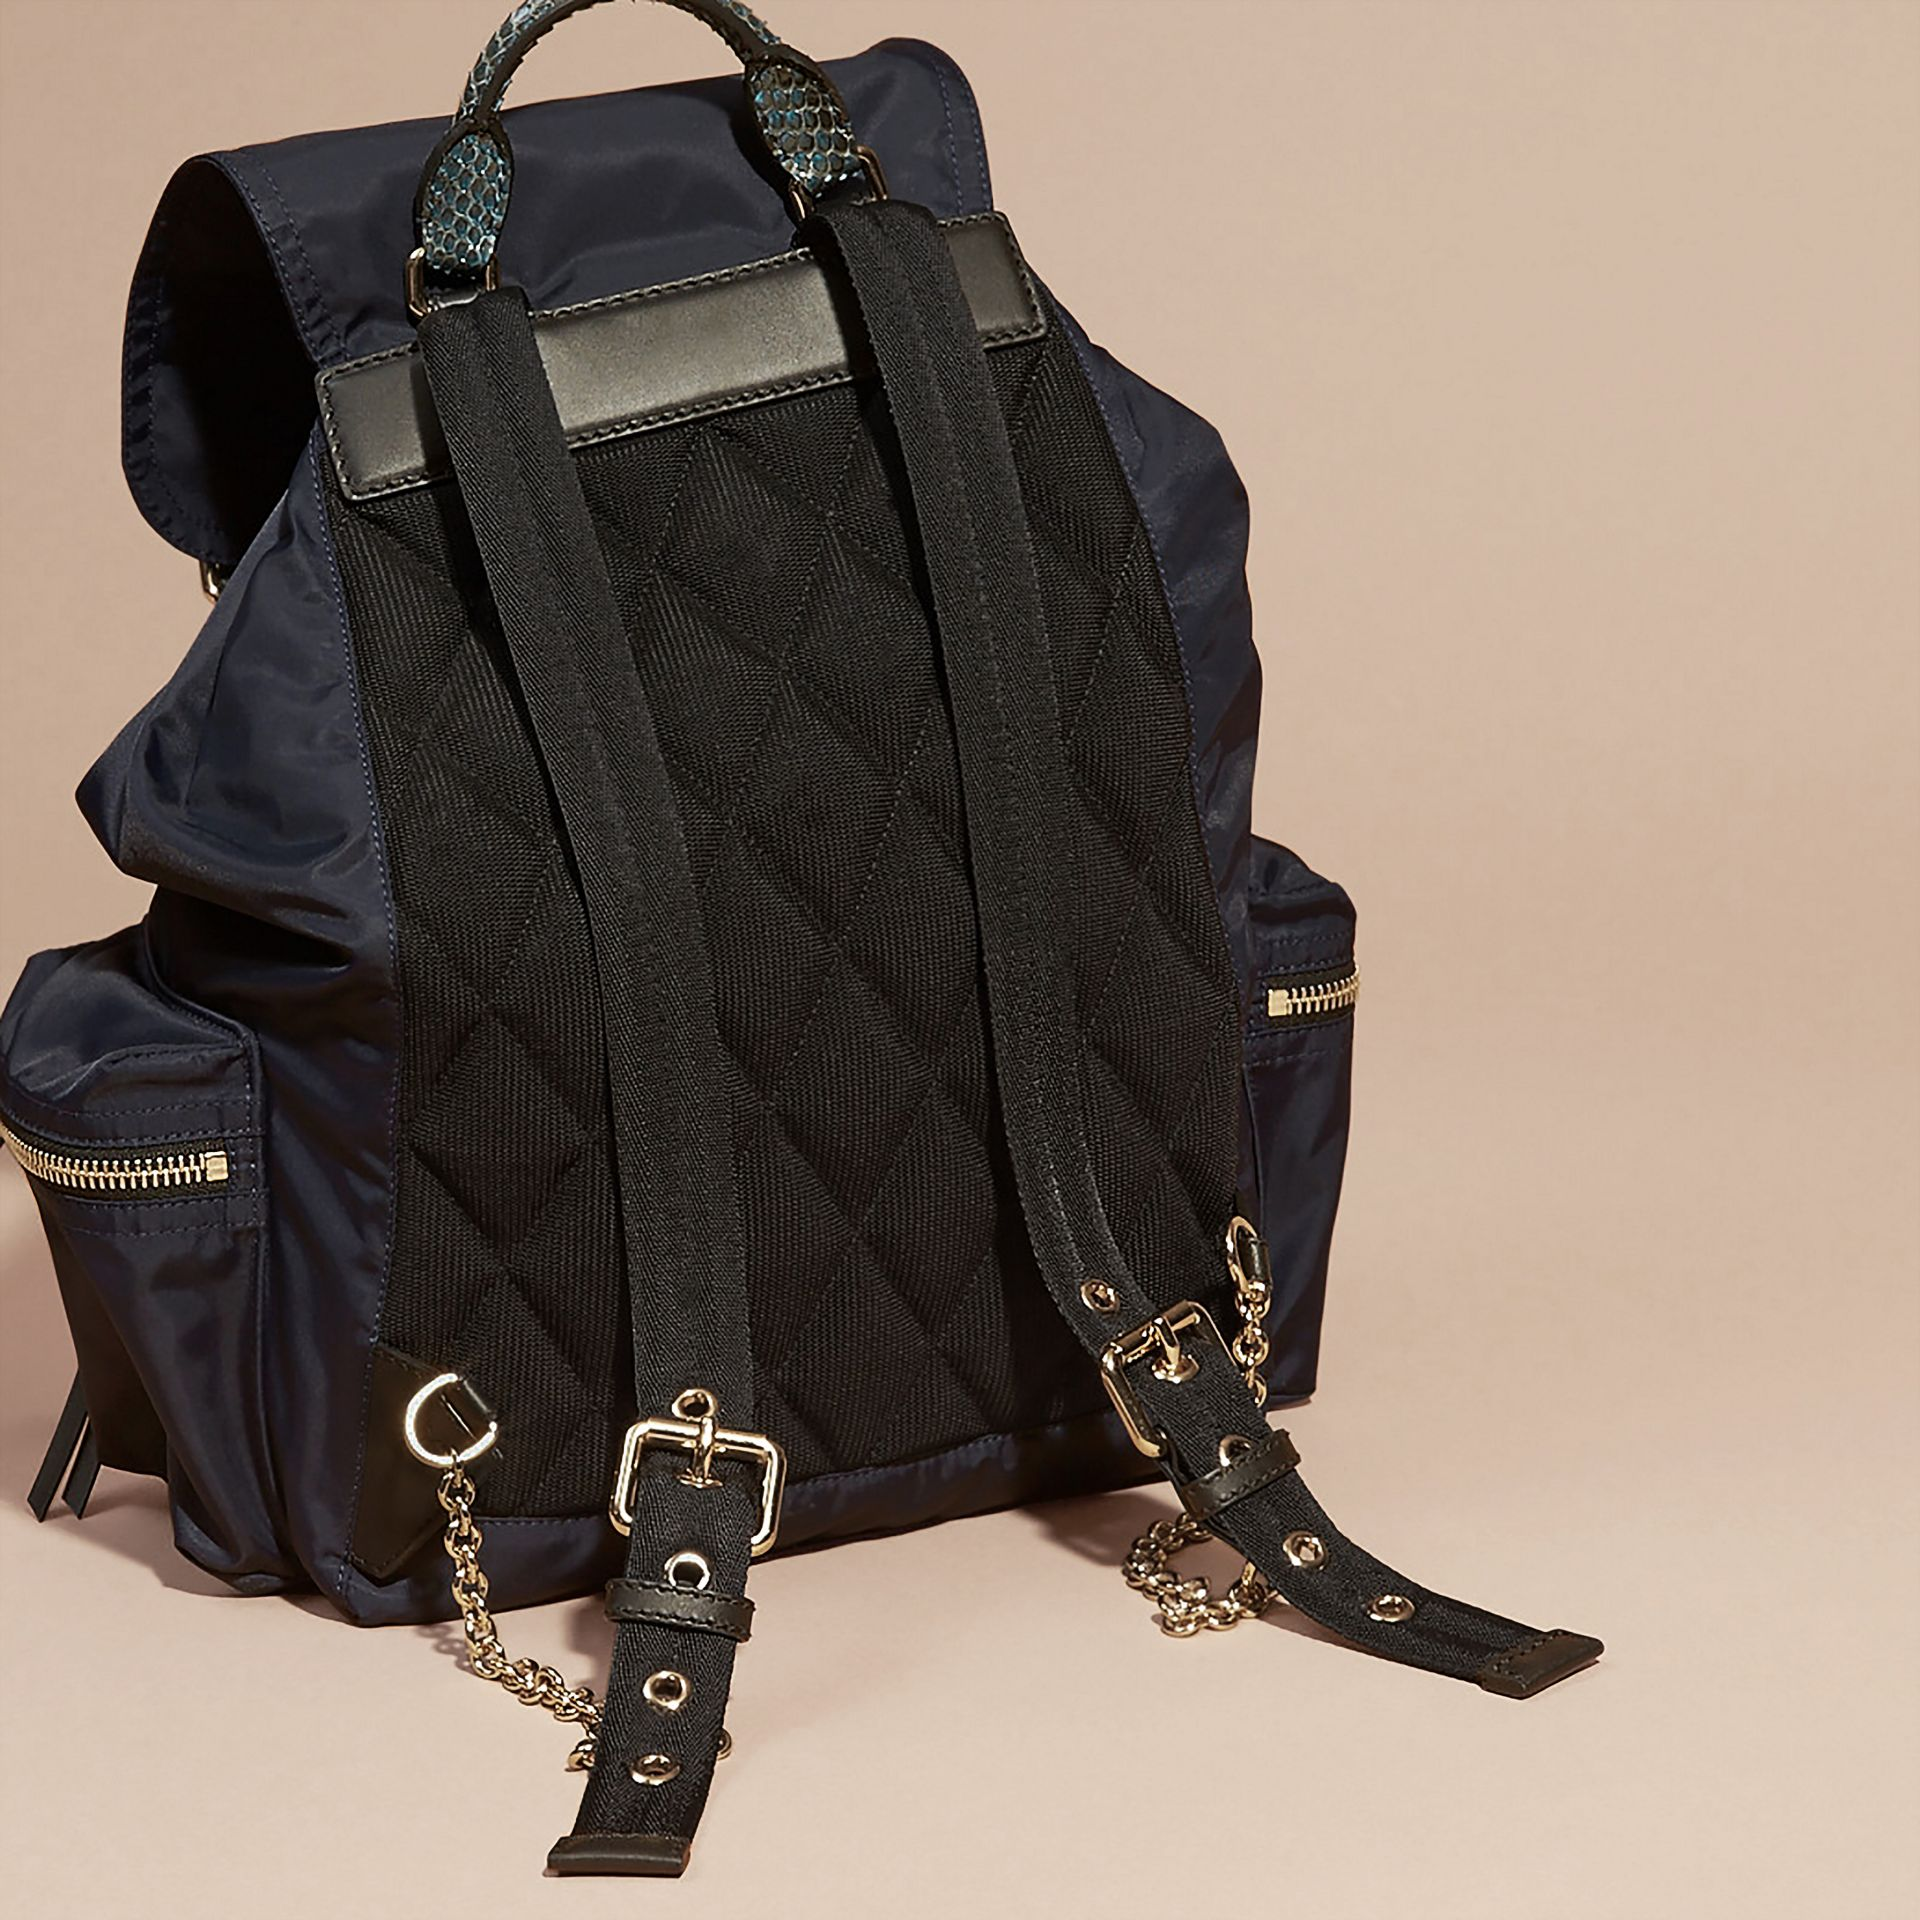 Ink blue/mineral blue The Large Rucksack in Technical Nylon and Snakeskin Ink Blue/mineral Blue - gallery image 4